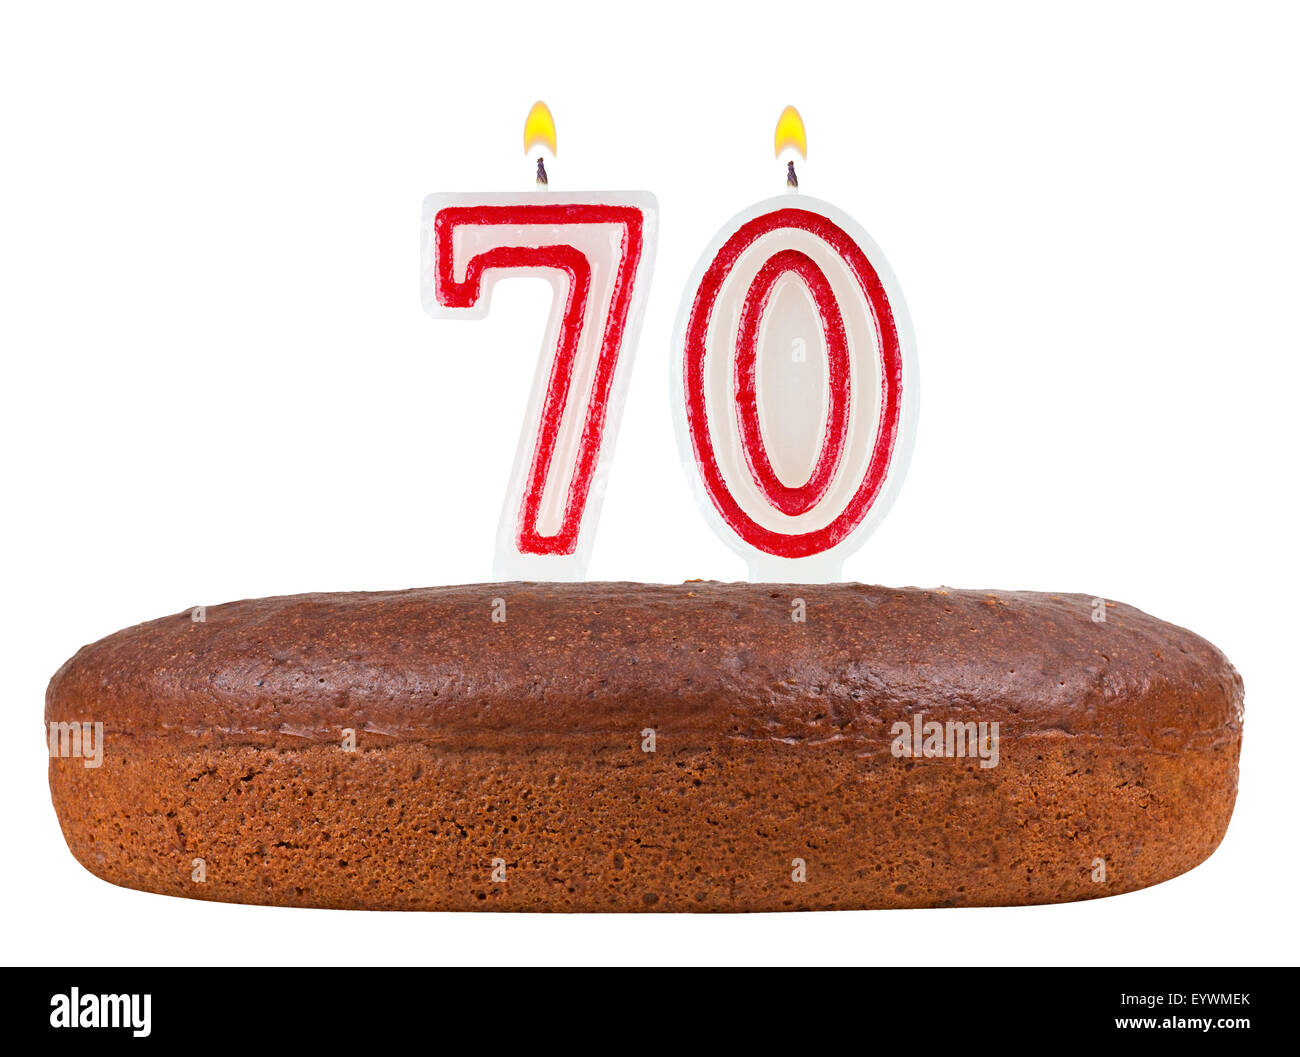 Birthday Cake With Candles Number 70 Isolated On White Background